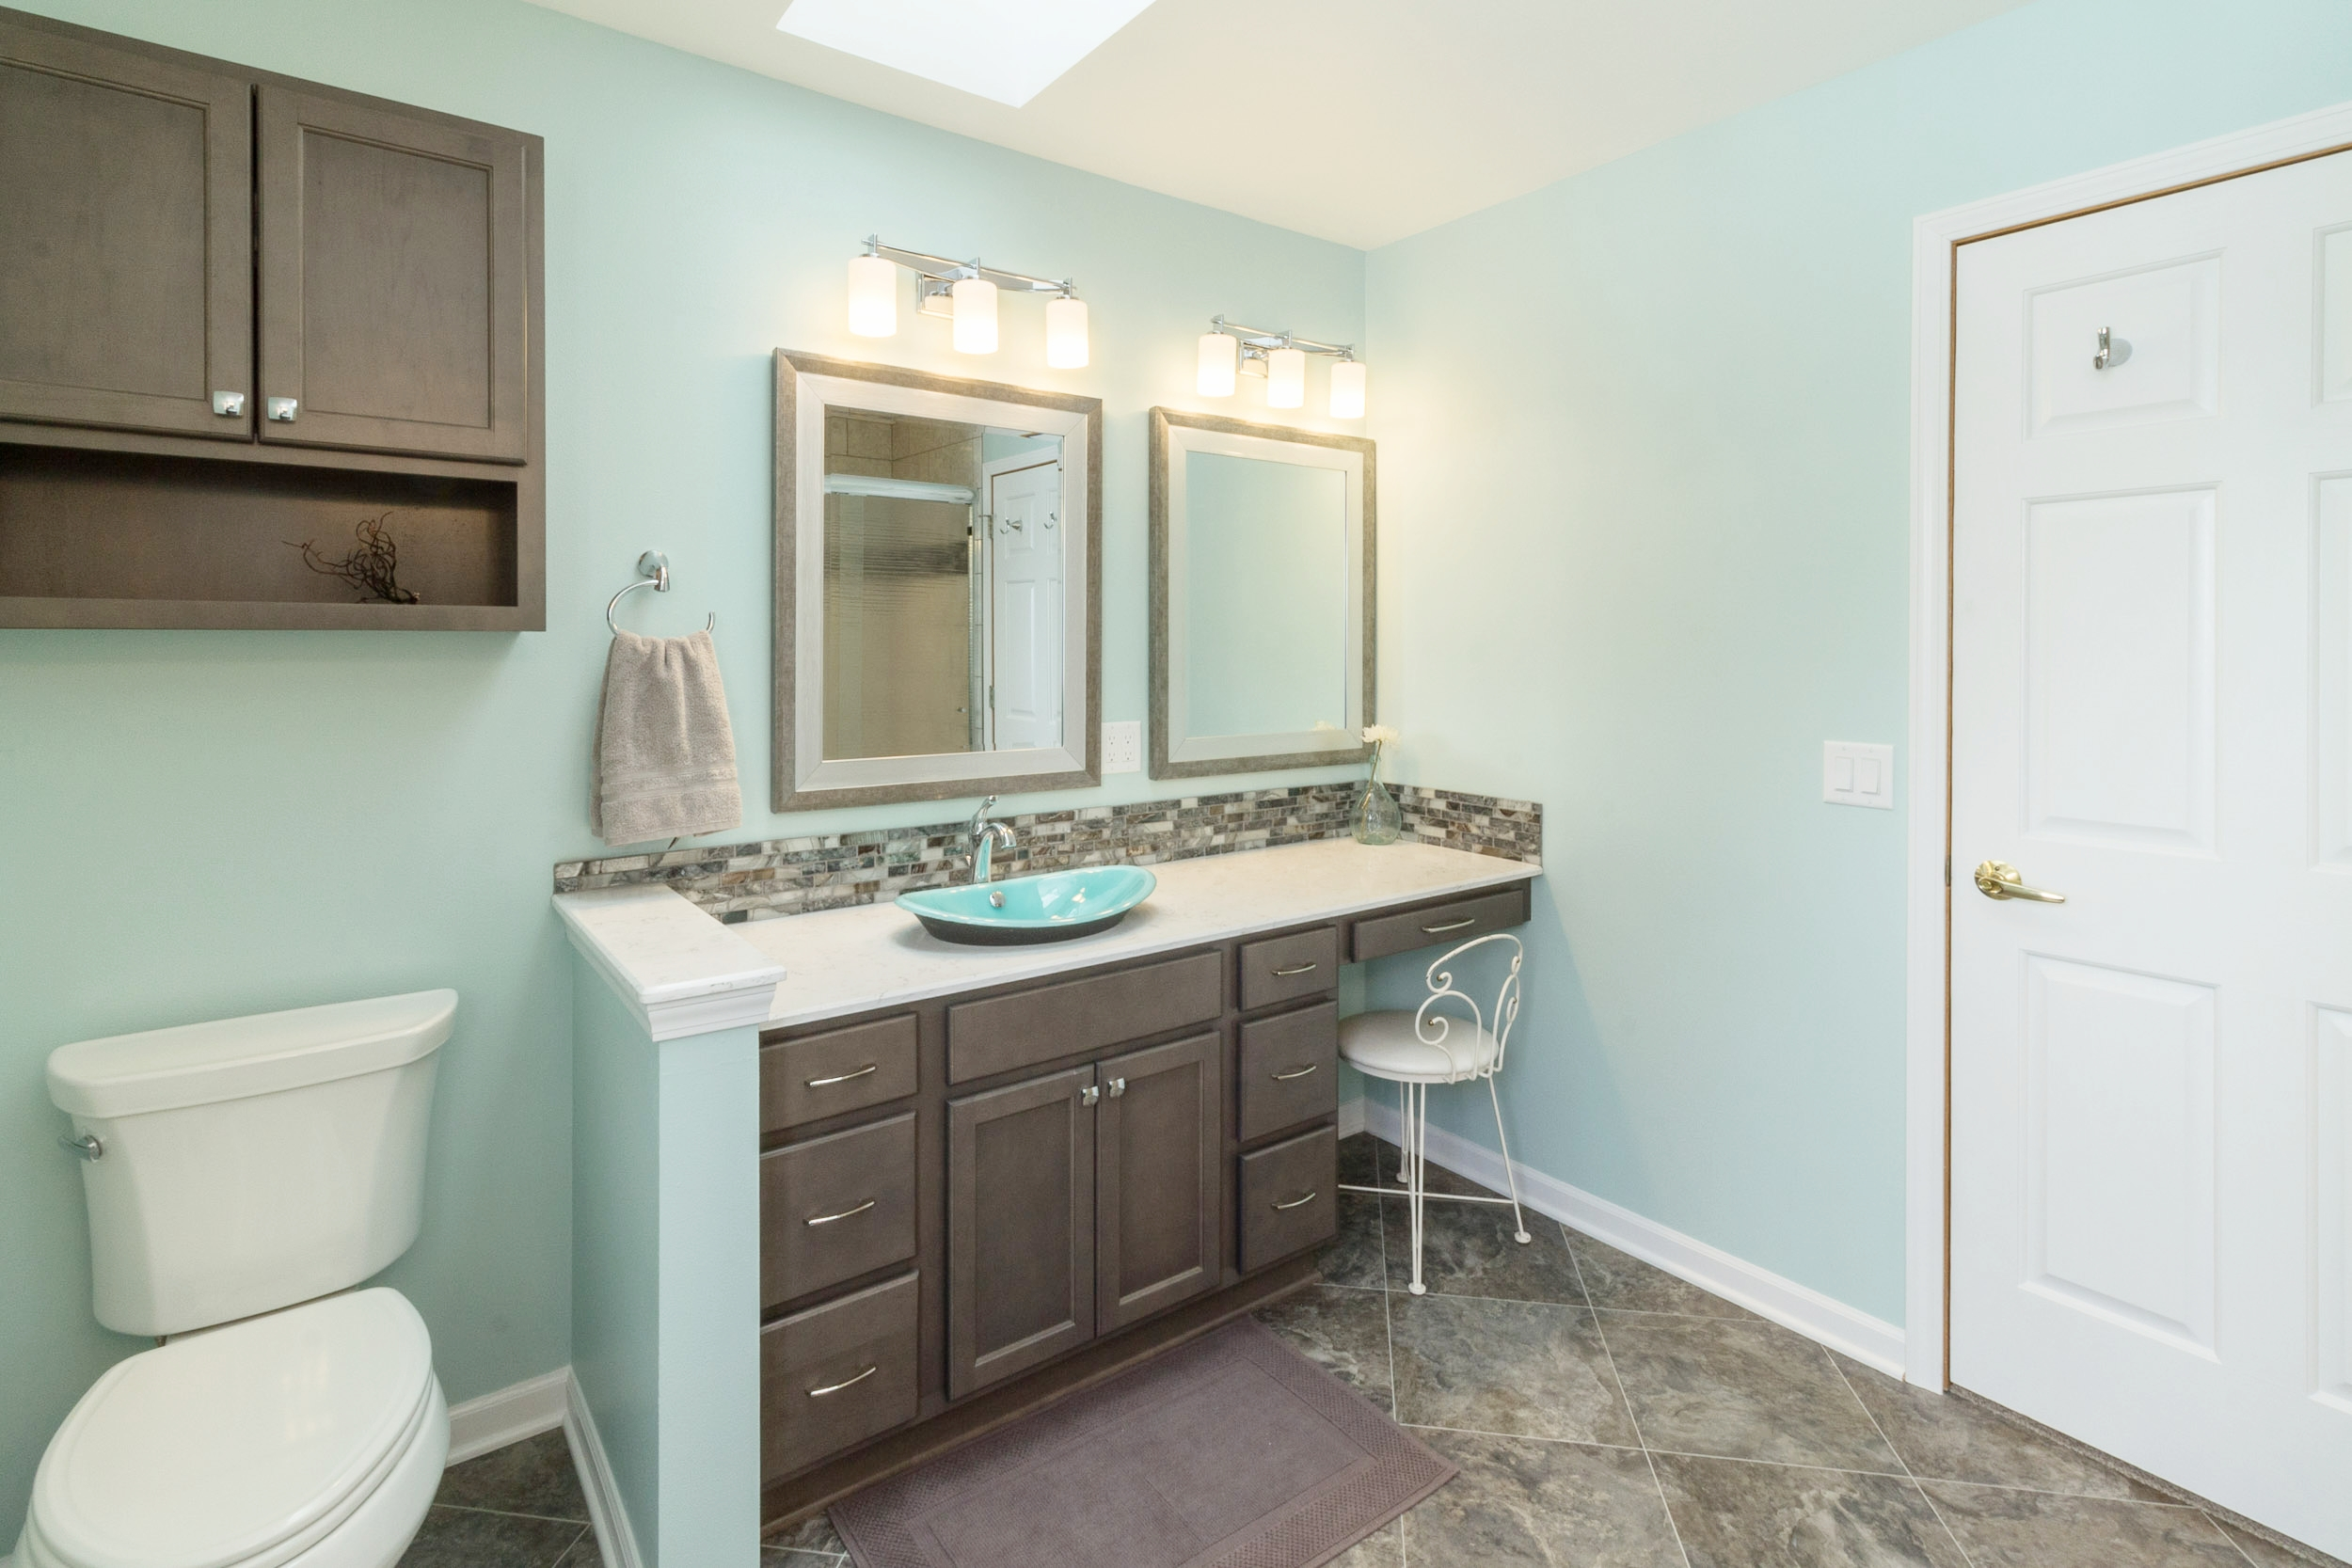 Bathroom Remodeling Ideas From The Kitchen and Bath Industry ...